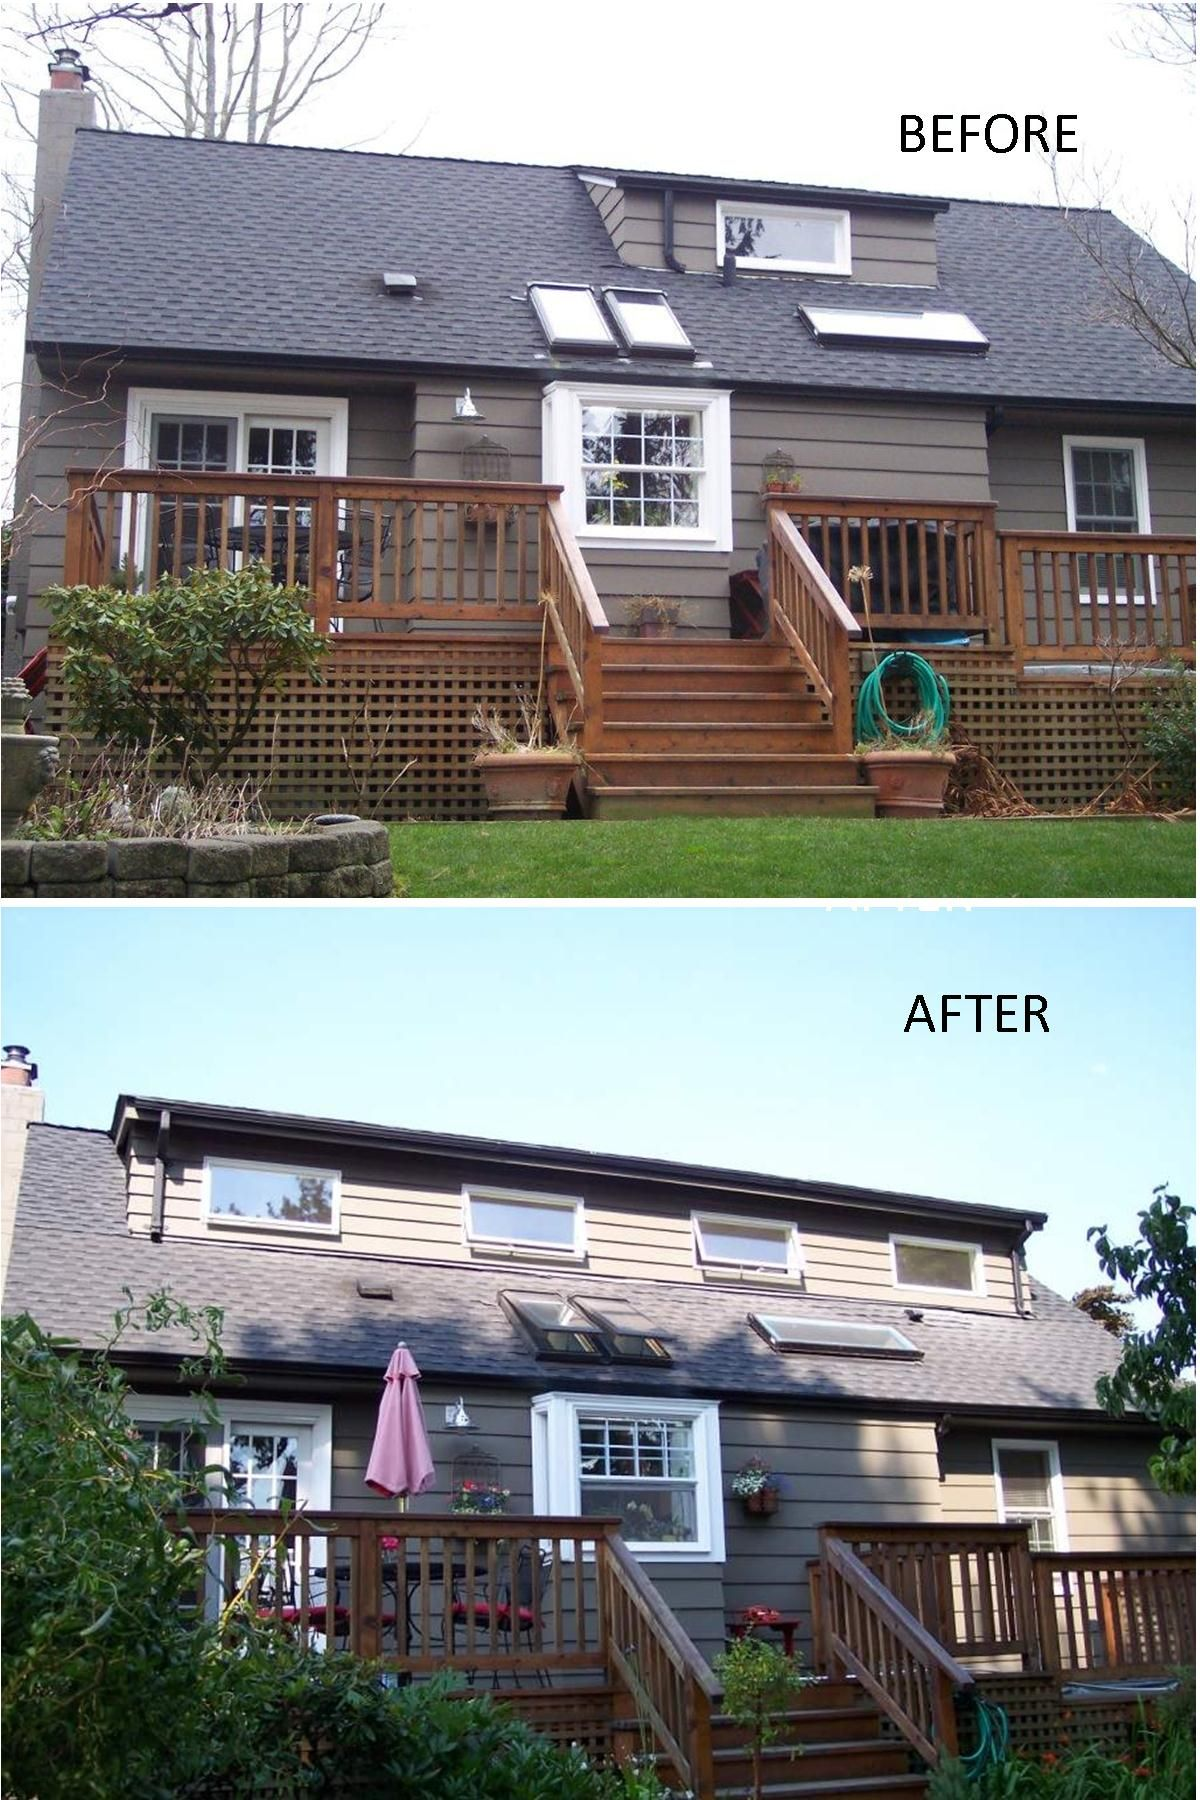 We Recently Finished This Project Where We Added A Dormer To The Home: Before And After Shot Of A 30-foot Shed Dormer Addition We Built In Seattle. Www.flyingdormer